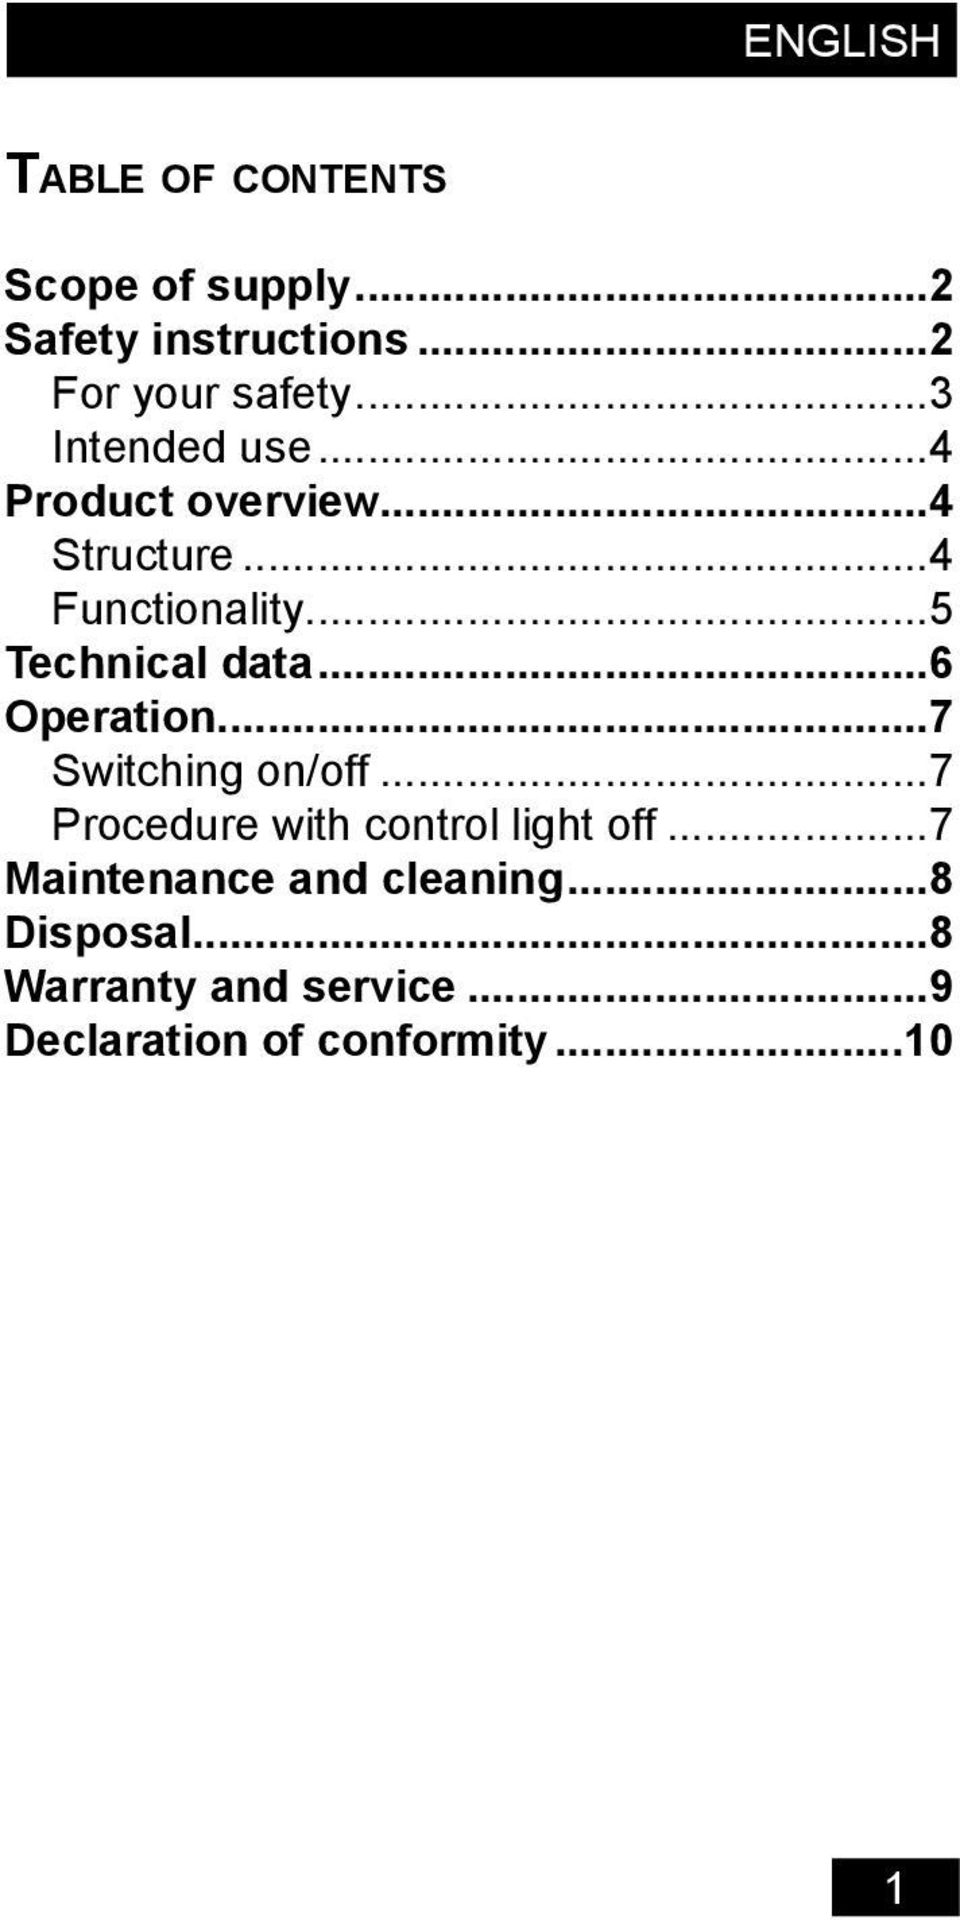 ..6 Operation...7 Switching on/off...7 Procedure with control light off.